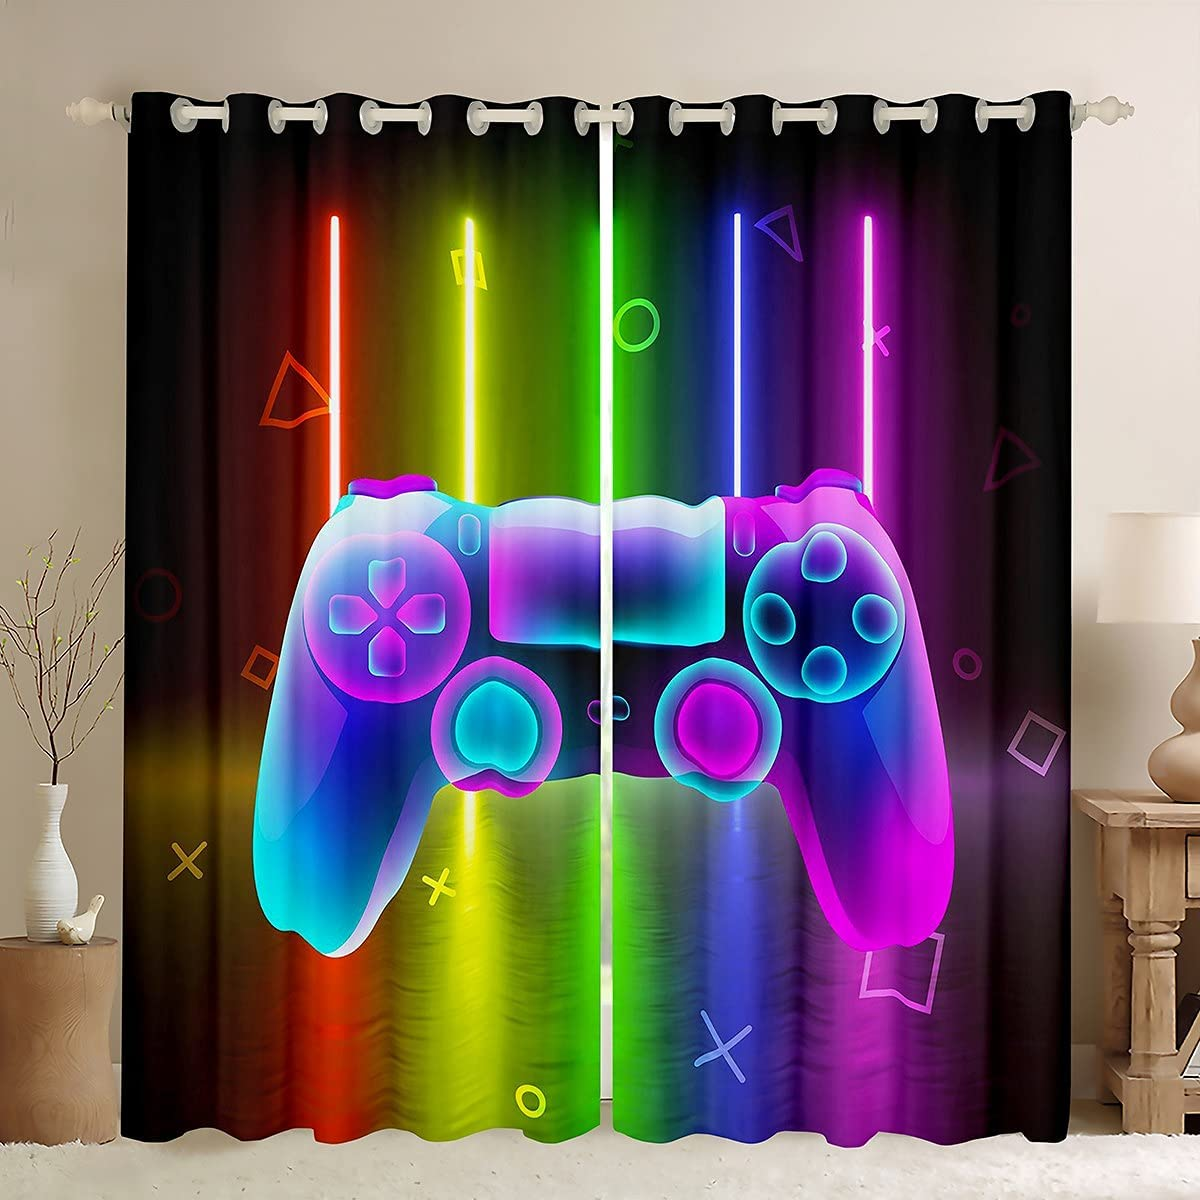 Video Games Curtains for Game Room Gamep Brand new Decor Watercolor Max 62% OFF Gaming